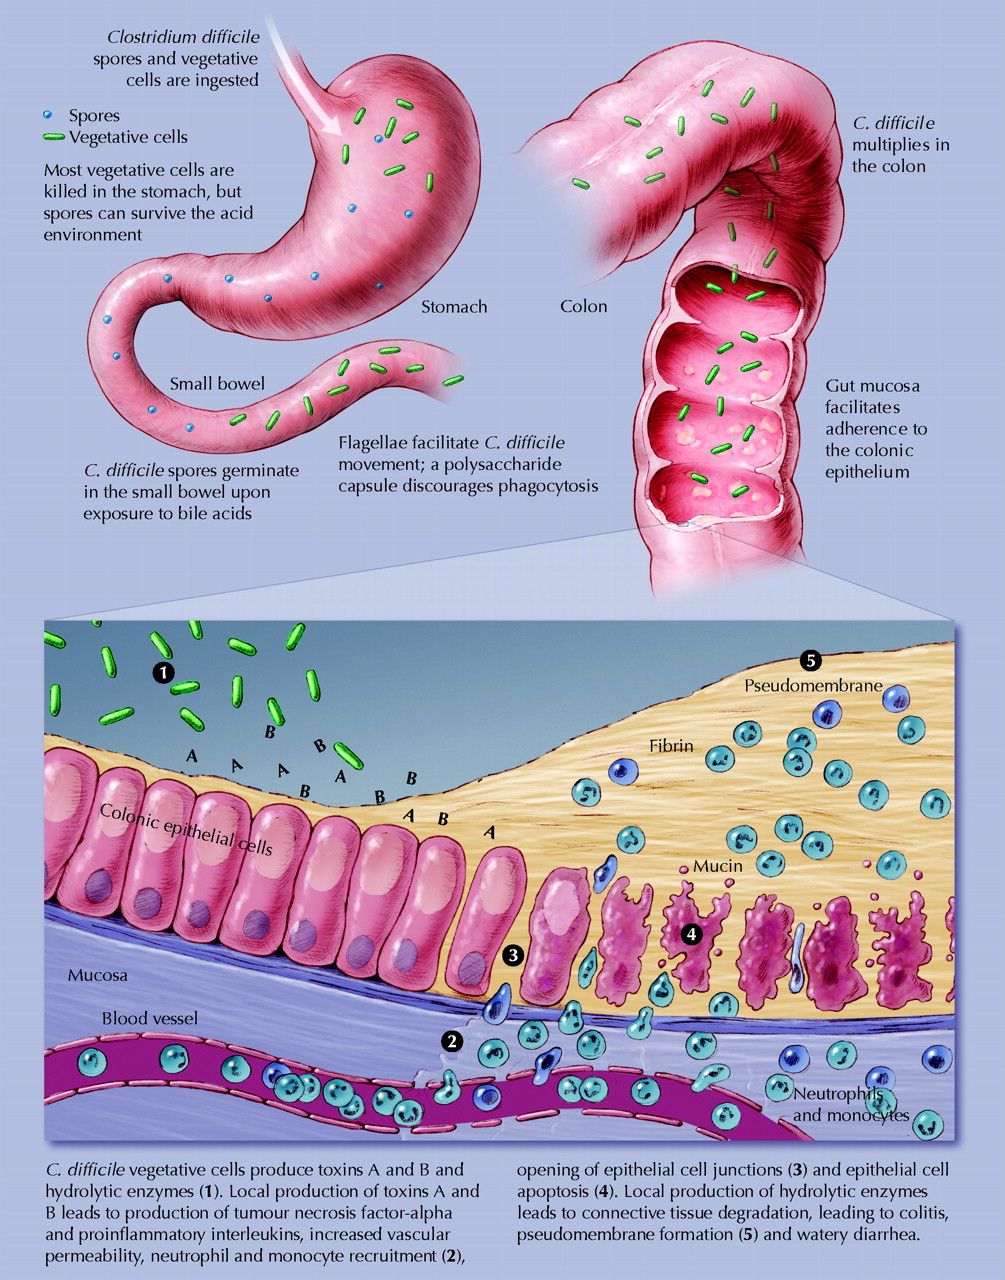 C Difficile Causes Symptoms Treatment C Difficile